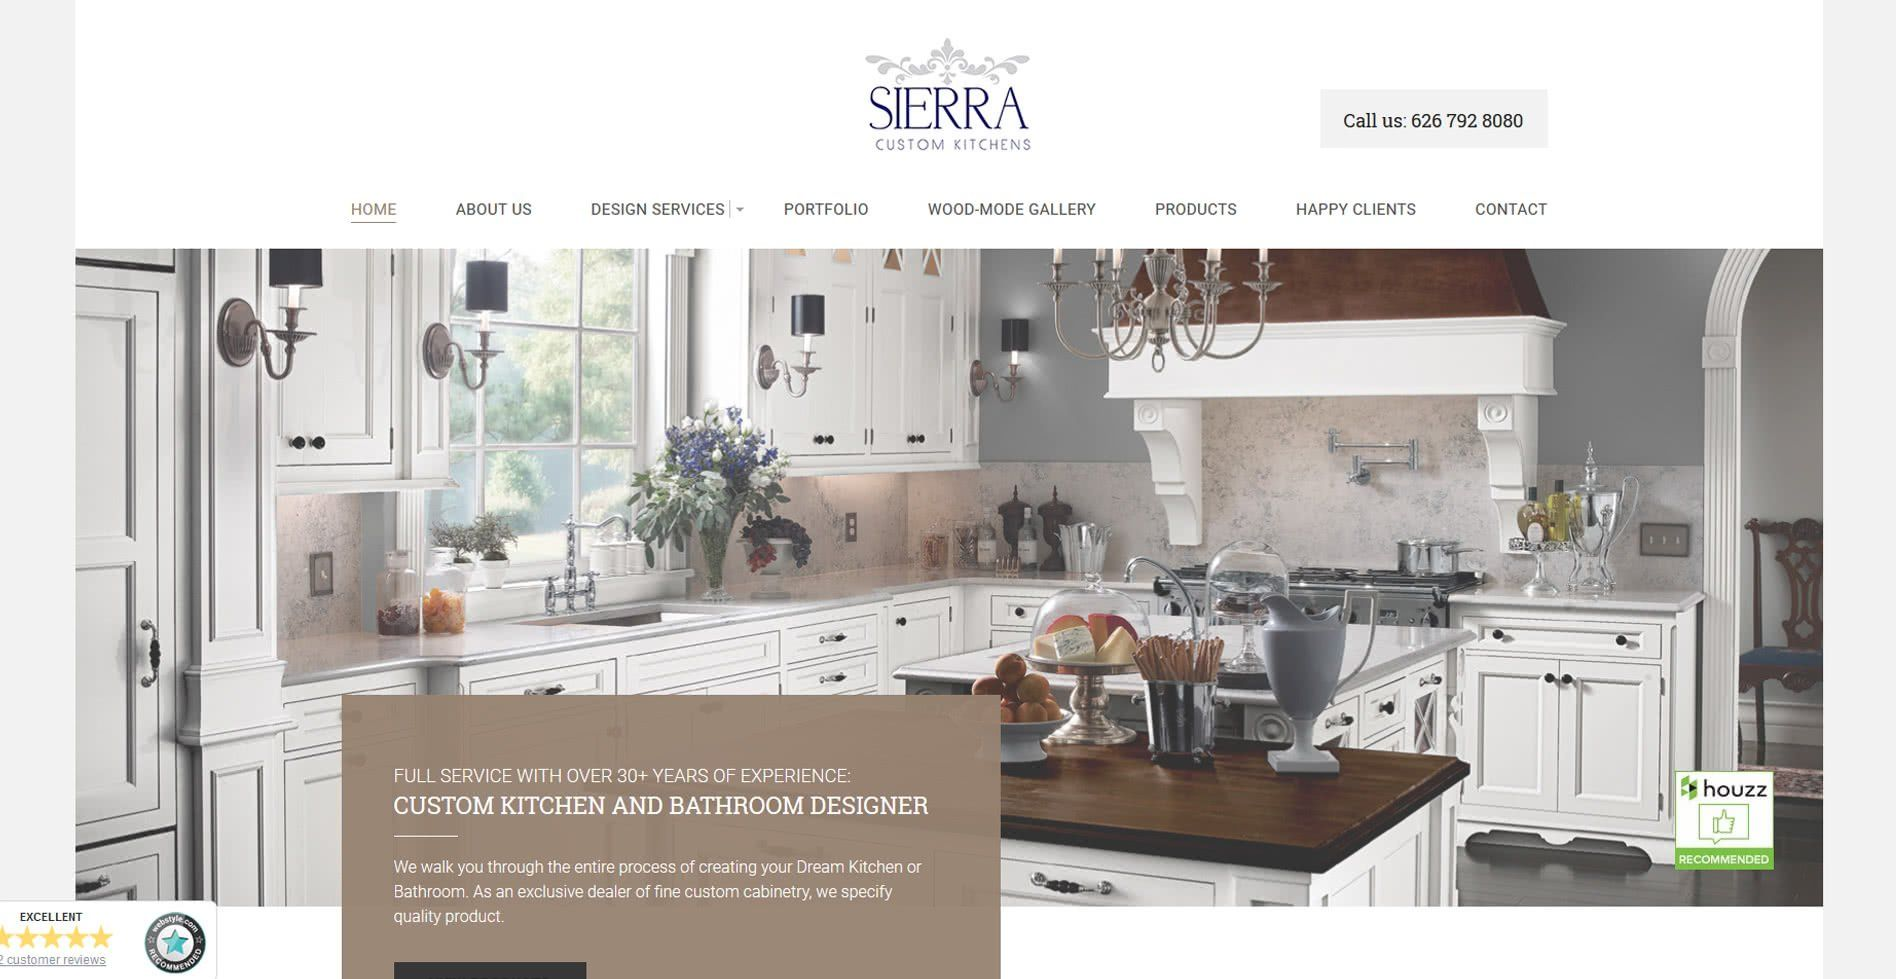 Sierra Custom Kitchens